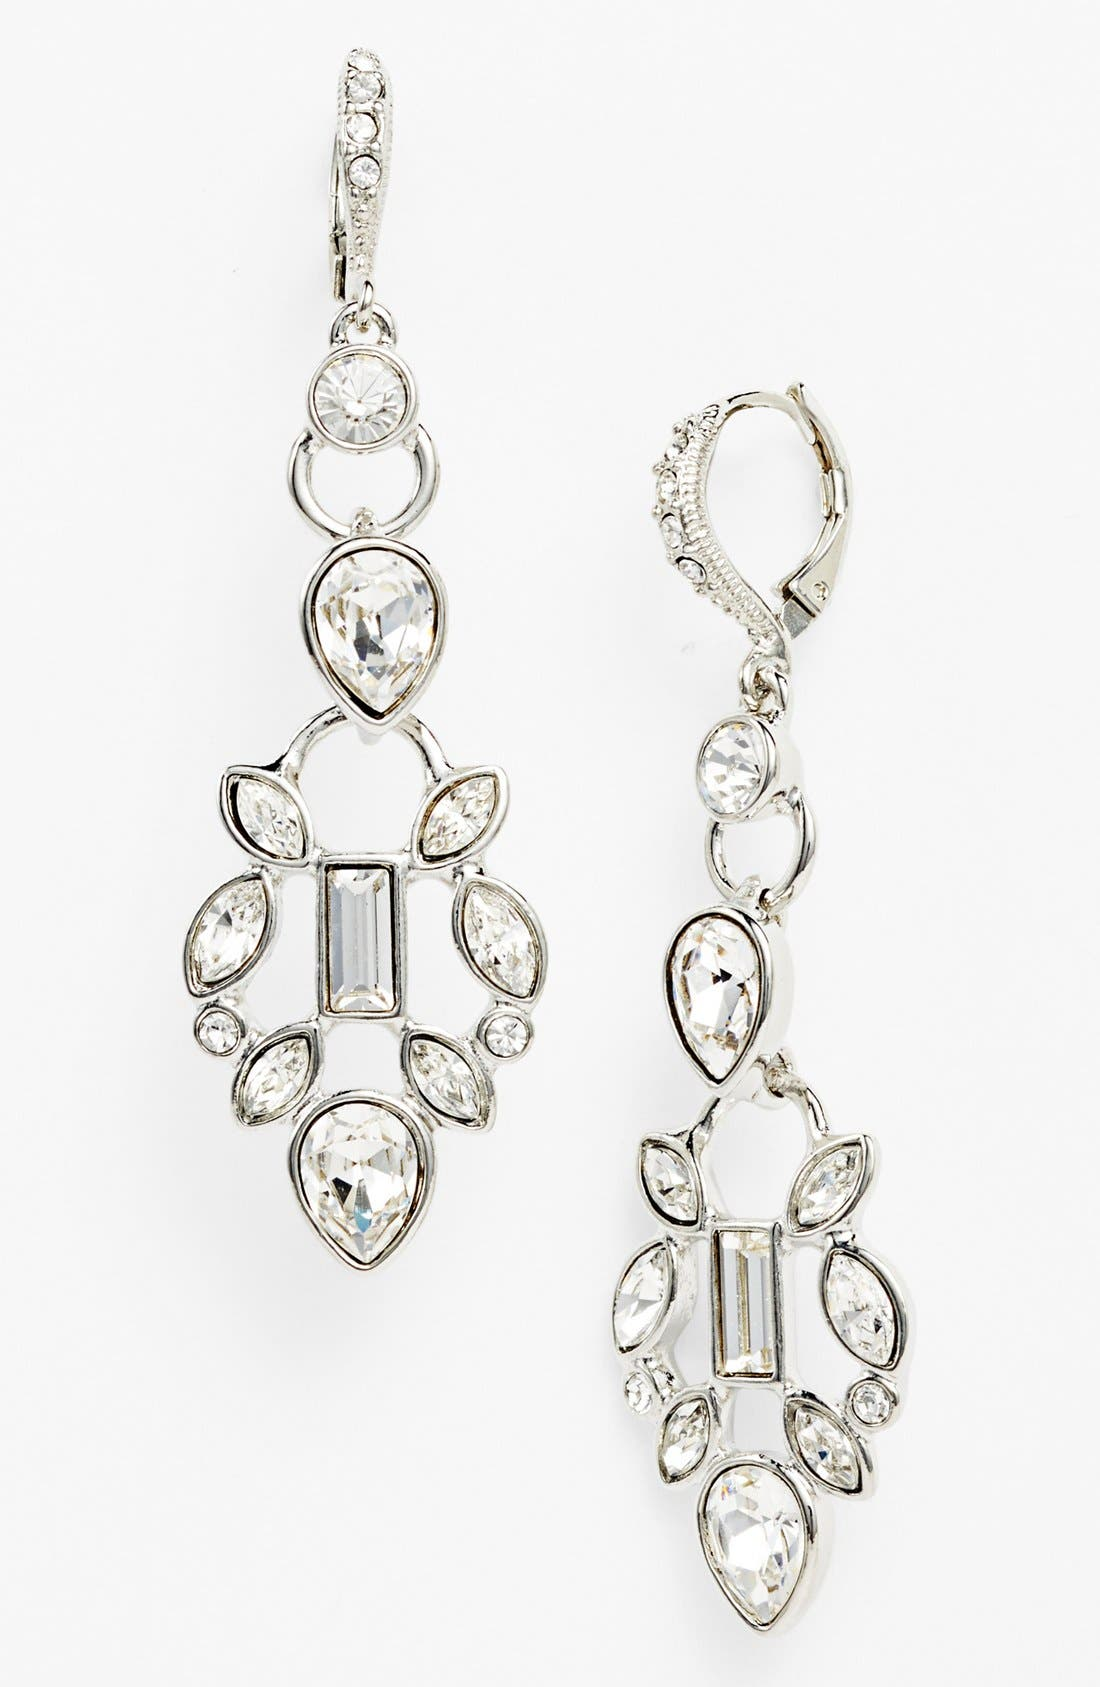 Alternate Image 1 Selected - Givenchy Crystal Cluster Drop Earrings (Nordstrom Exclusive)